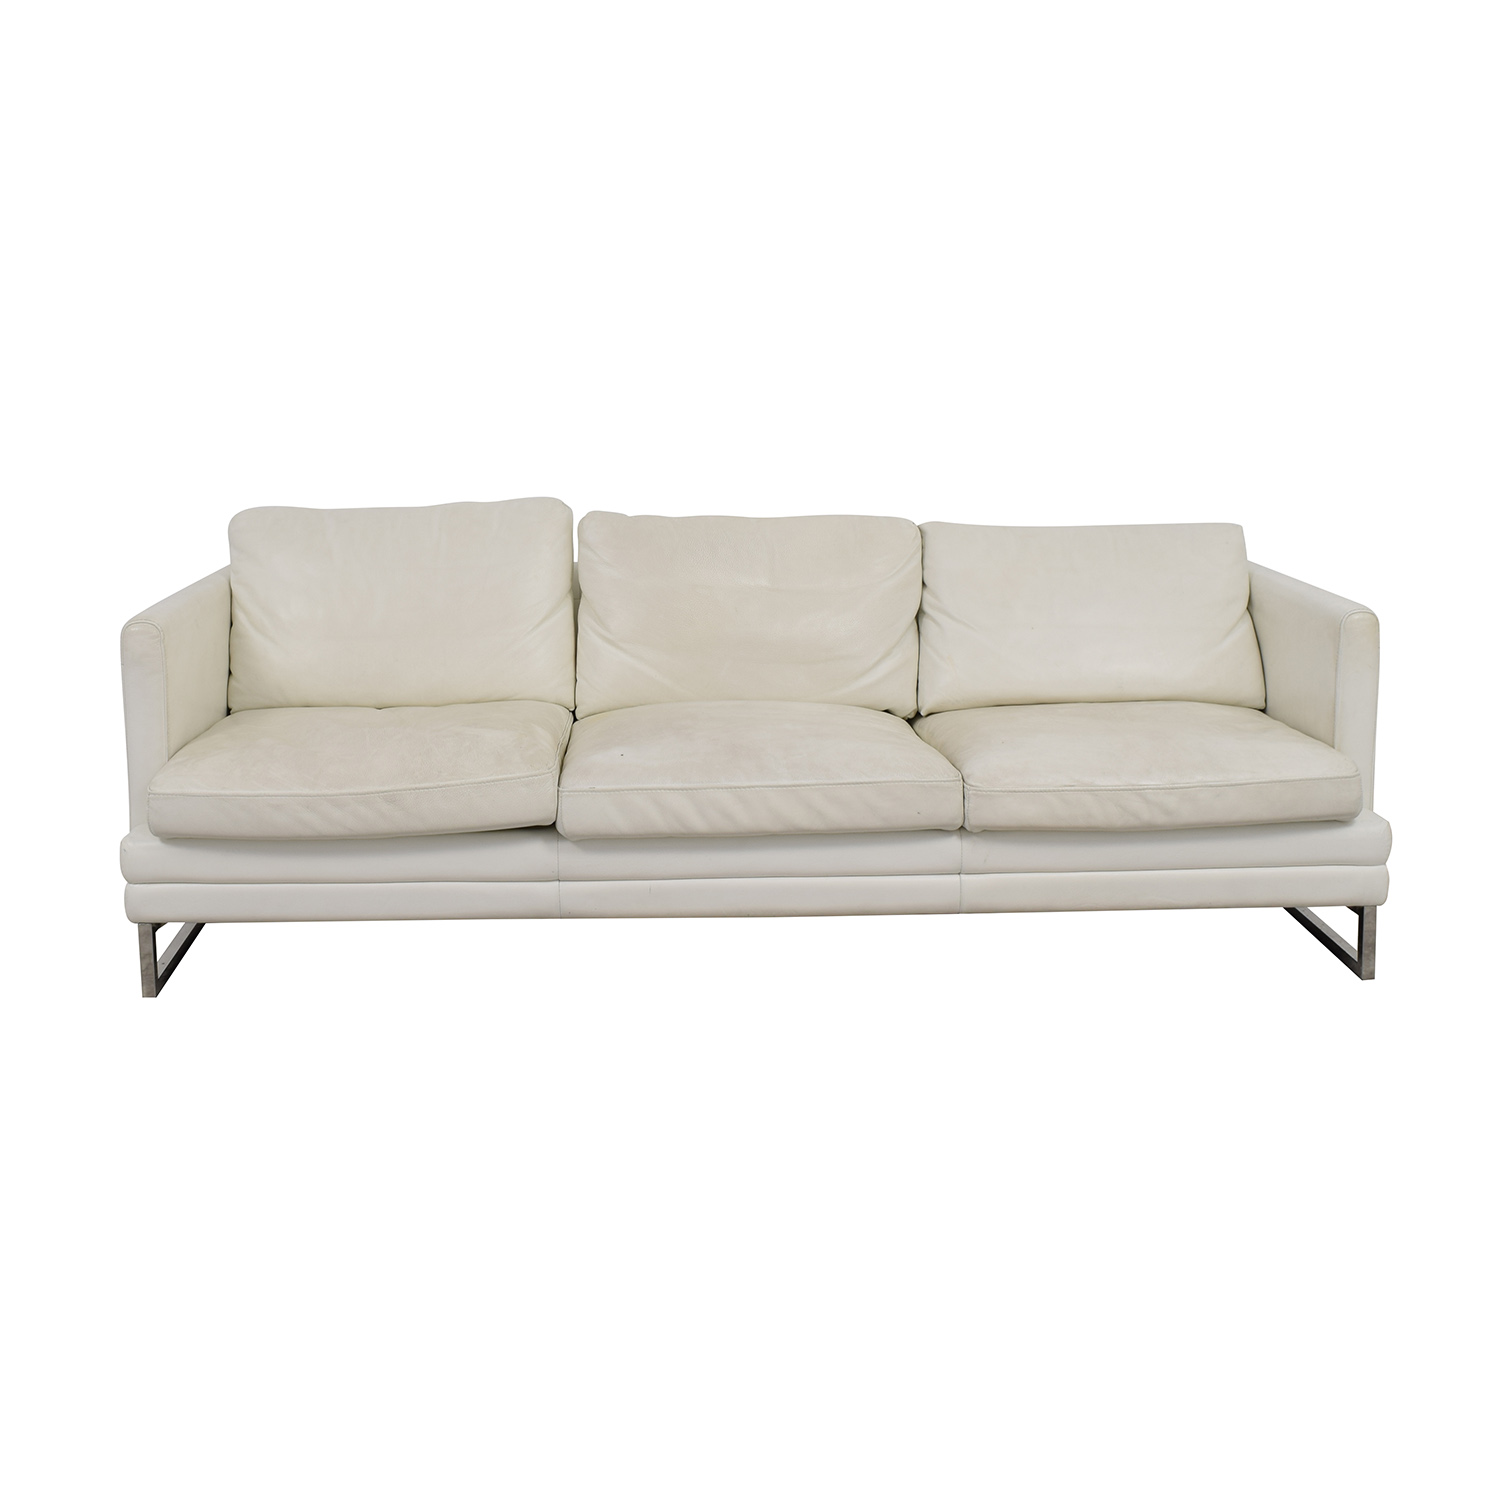 Z Gallerie Z Gallerie White Leather Three-Cushion Sofa For Sale